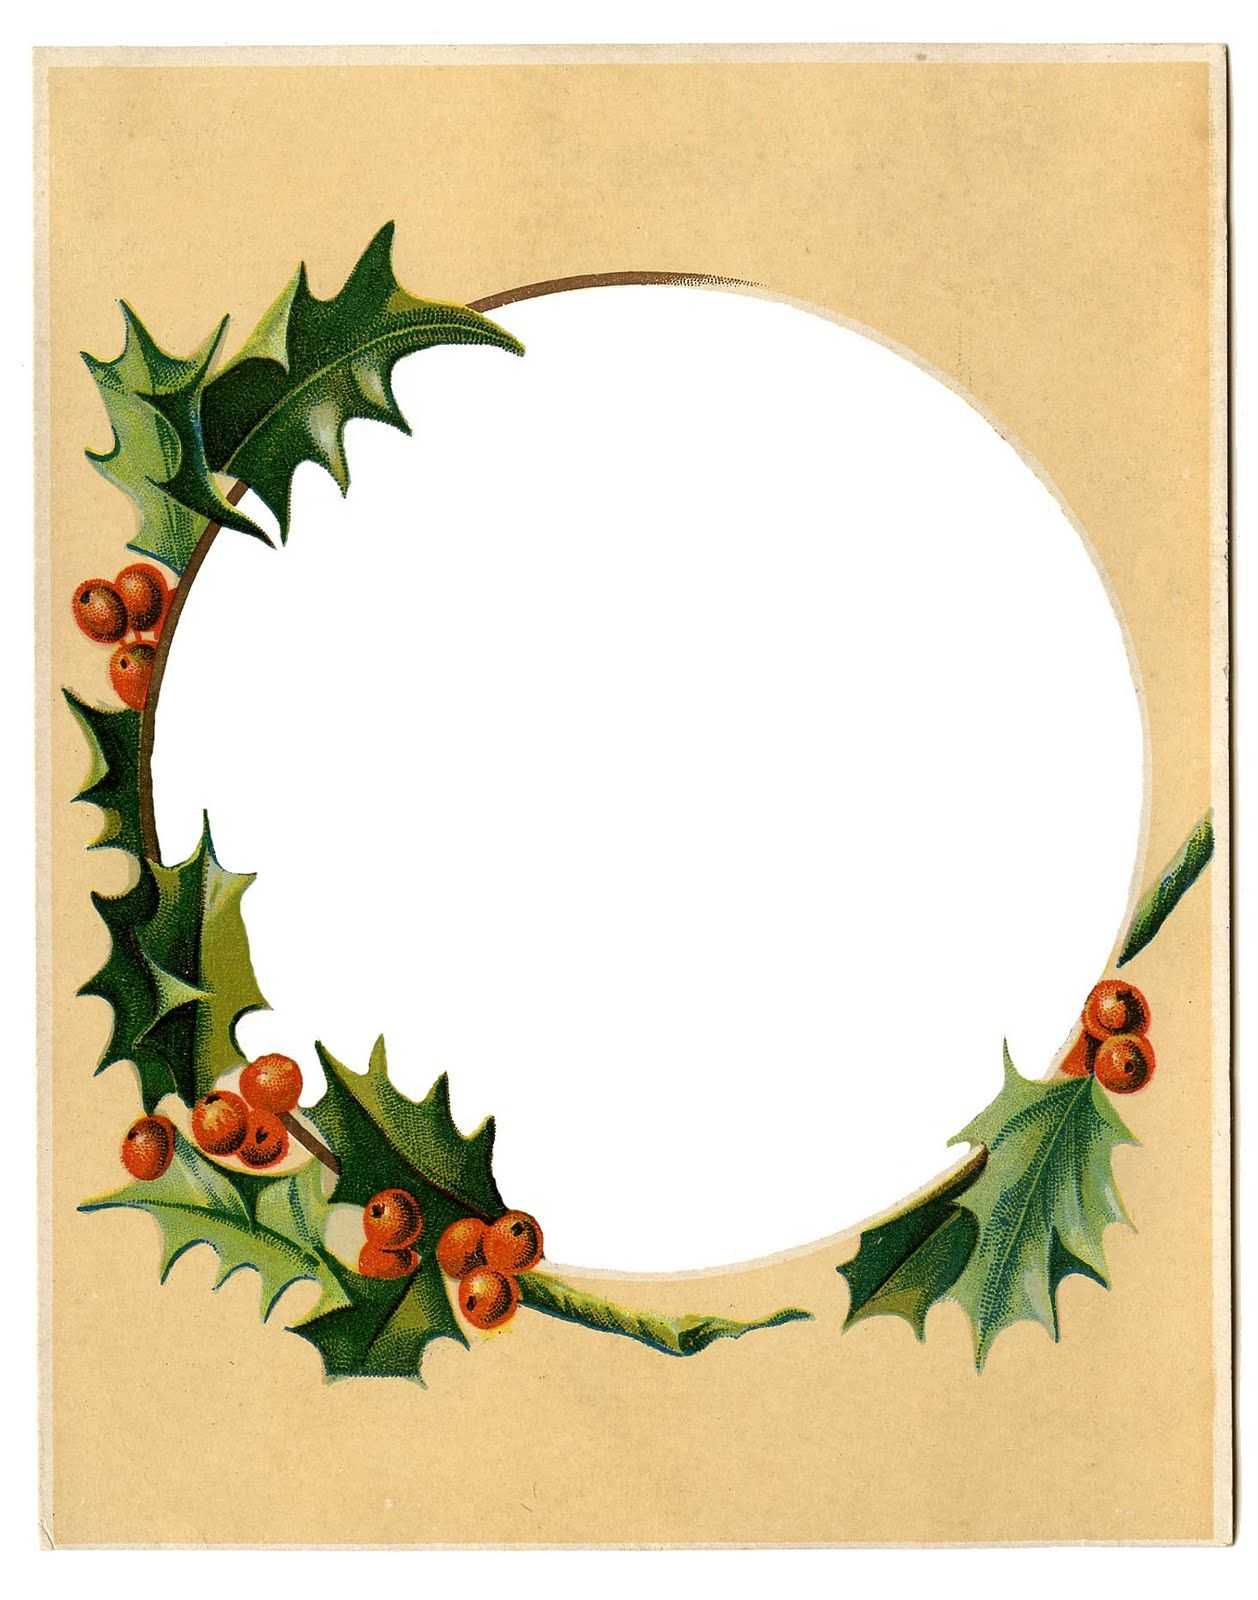 Vintage Holiday Border Clipart.